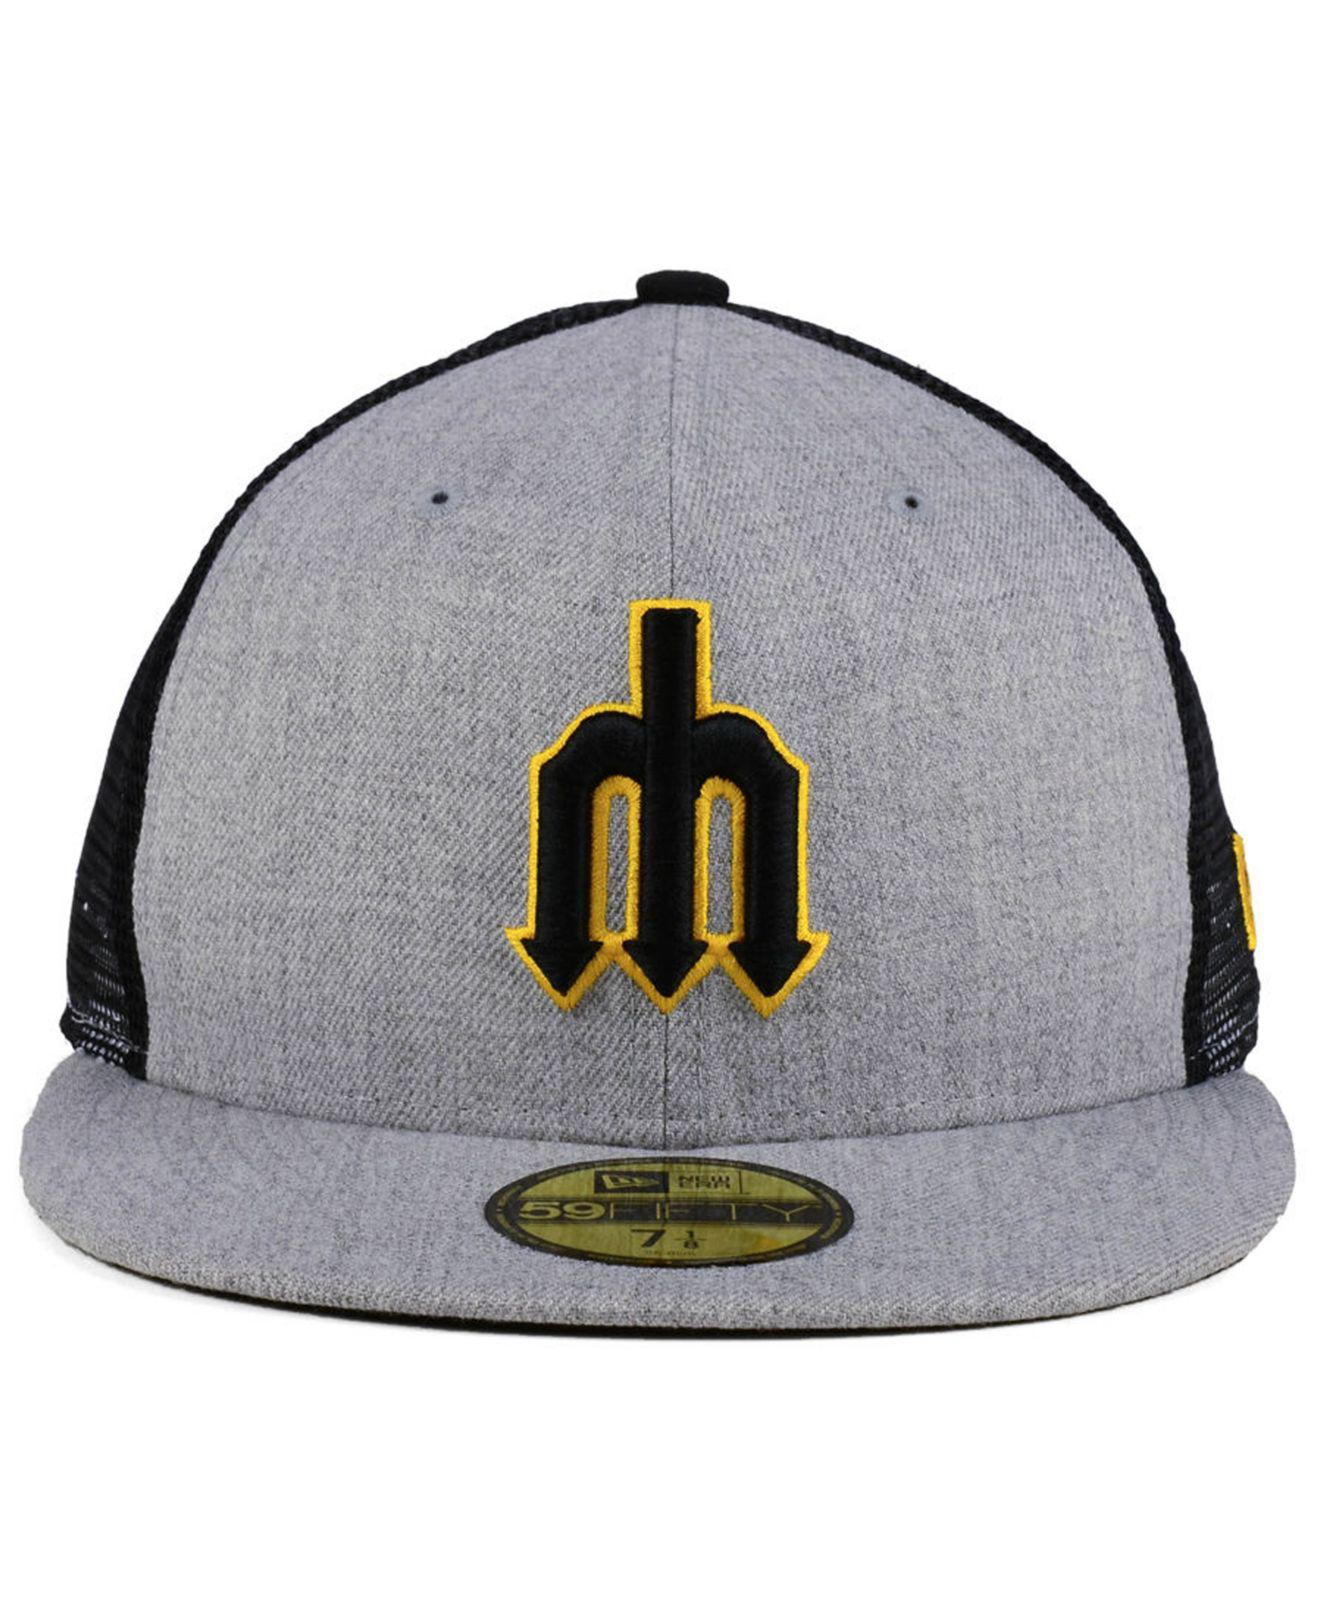 low priced b3603 ef798 KTZ Seattle Mariners New School Mesh 59fifty Fitted Cap for Men - Lyst